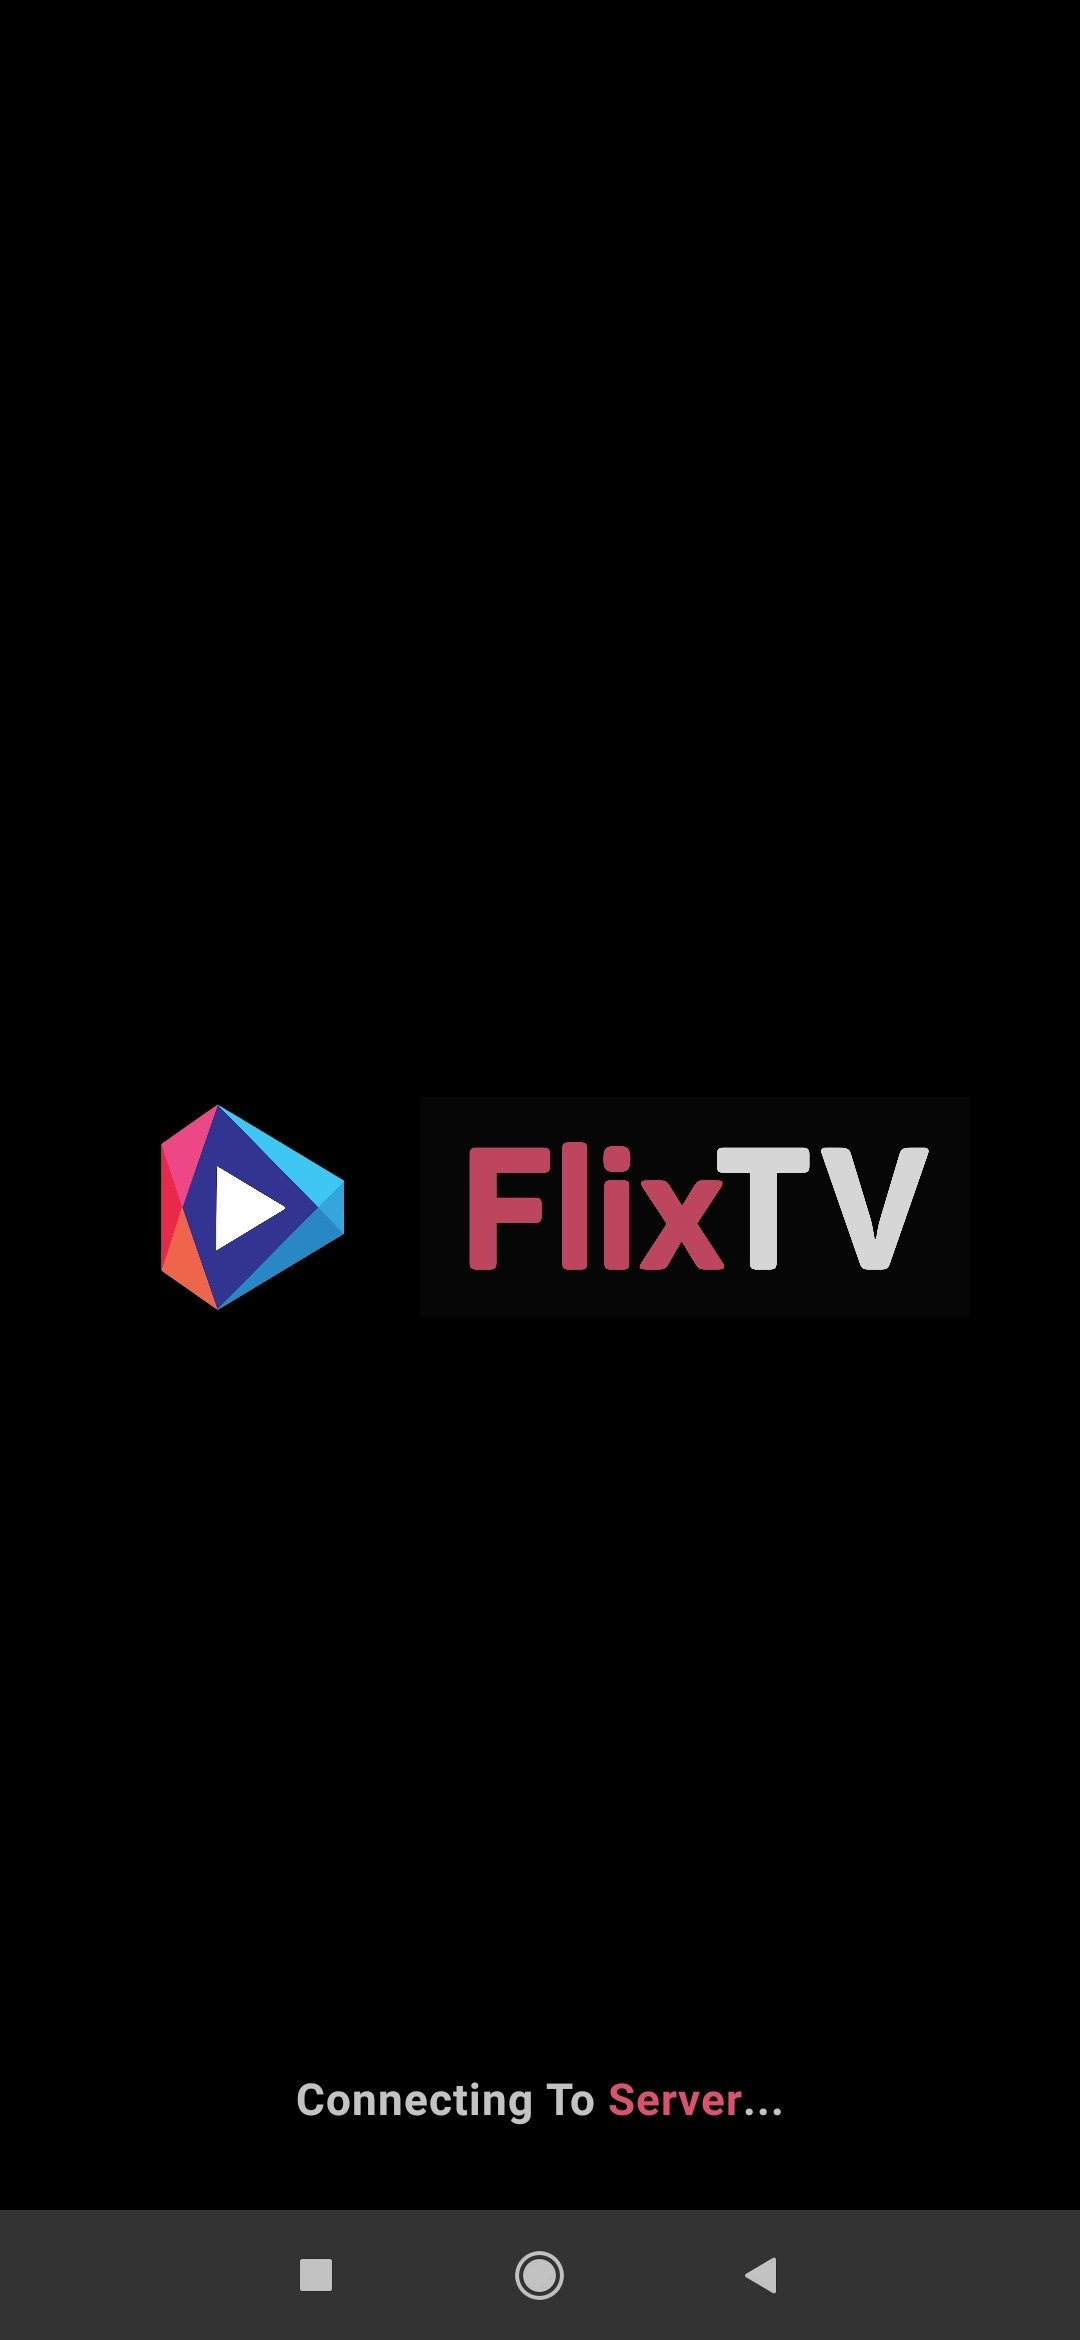 Flix Download flixtv 2.0 - download for android apk free